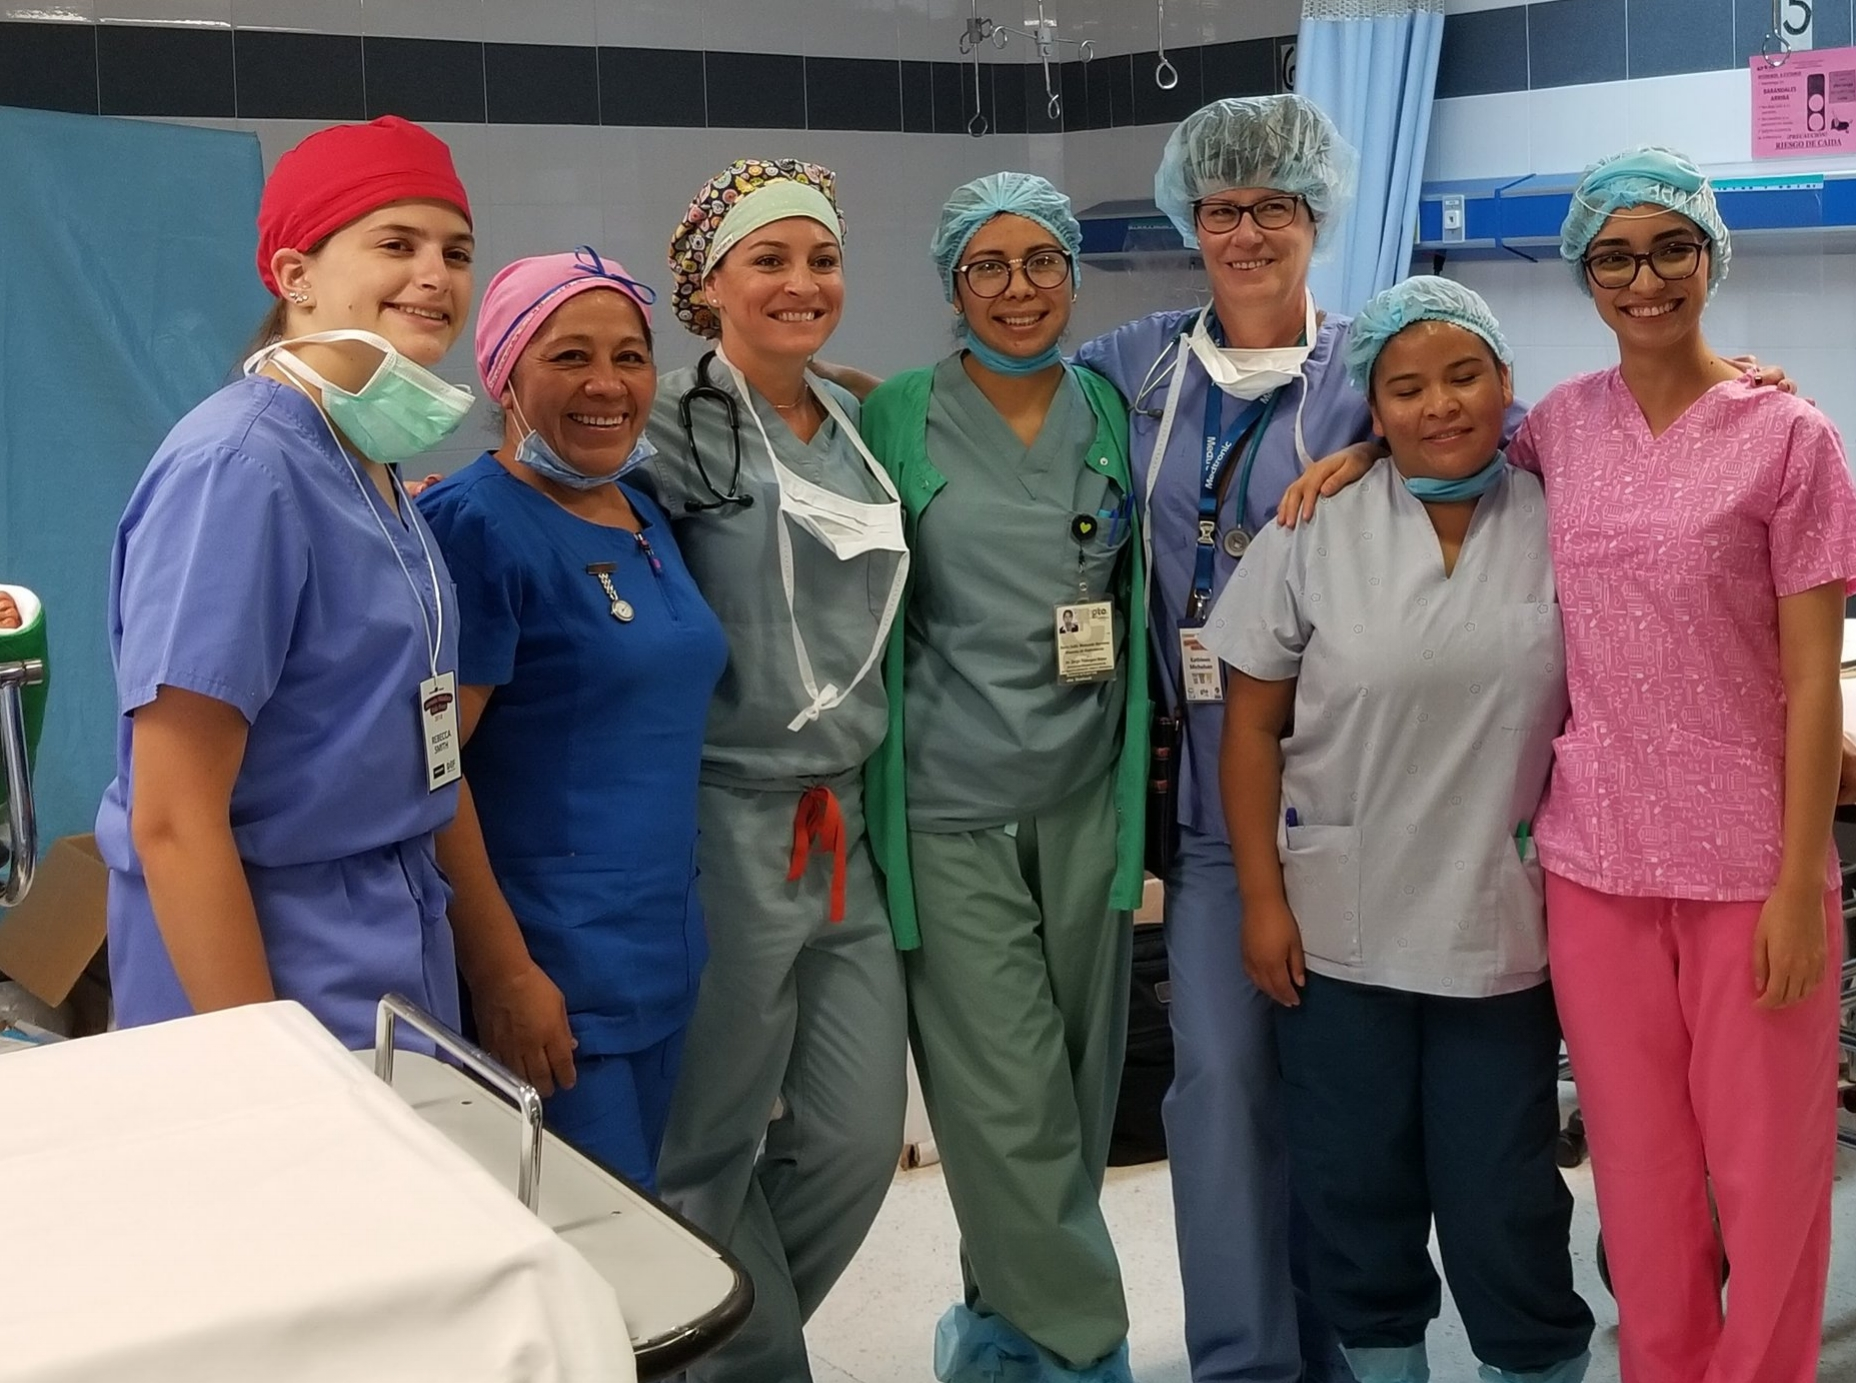 Team - A 25-member team typically made up of three orthopedic surgeons, one orthopedic resident, a five member anesthesia team consisting of anesthesiologists and nurse anethetists, fourteen nurses, and one hand therapist volunteer their time each year.